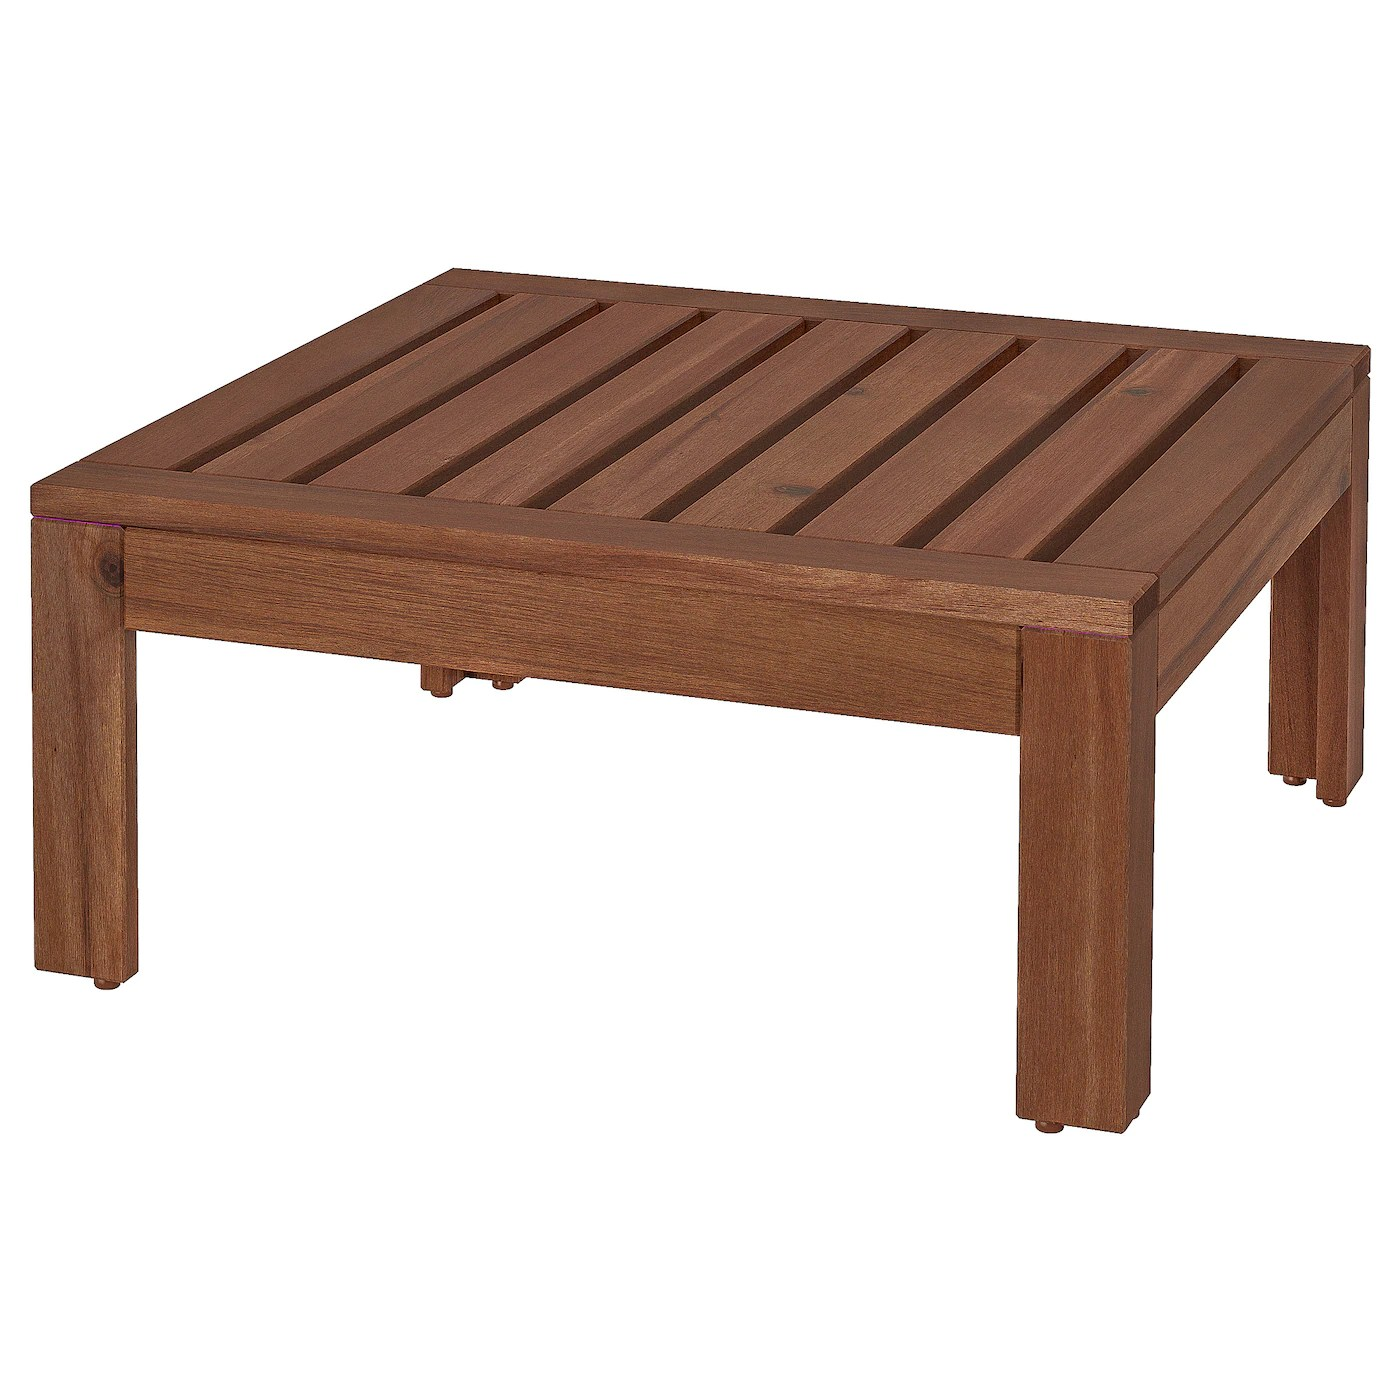 applaro table stool section outdoor brown stained 24 3 4x24 3 4